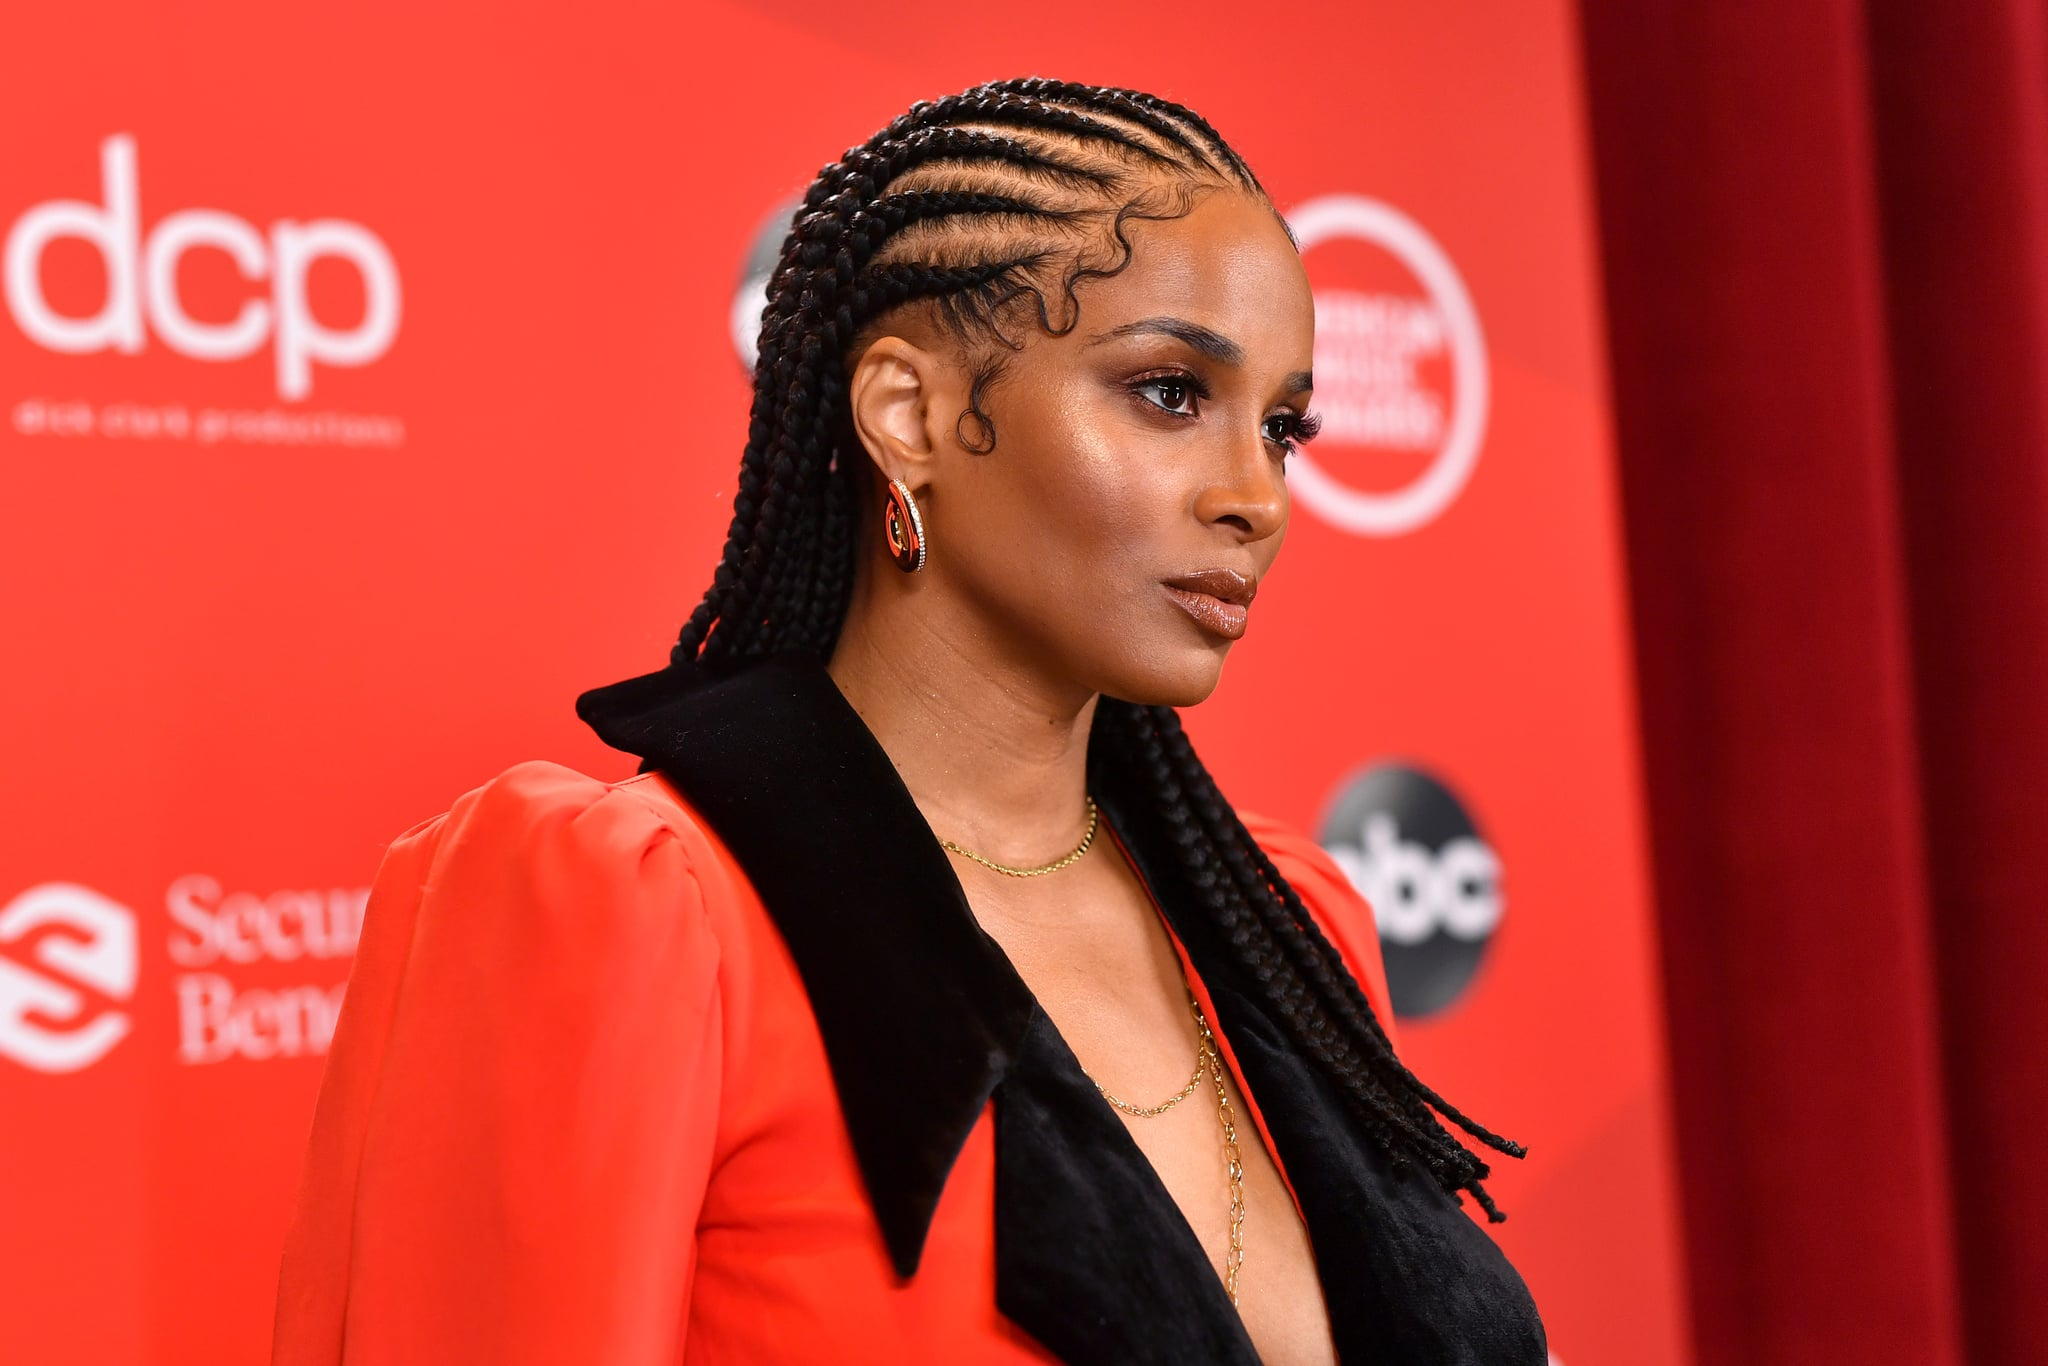 LOS ANGELES, CALIFORNIA - NOVEMBER 22: In this image released on November 22, Ciara attends the 2020 American Music Awards at Microsoft Theatre on November 22, 2020 in Los Angeles, California. (Photo by Emma McIntyre /AMA2020/Getty Images for dcp)